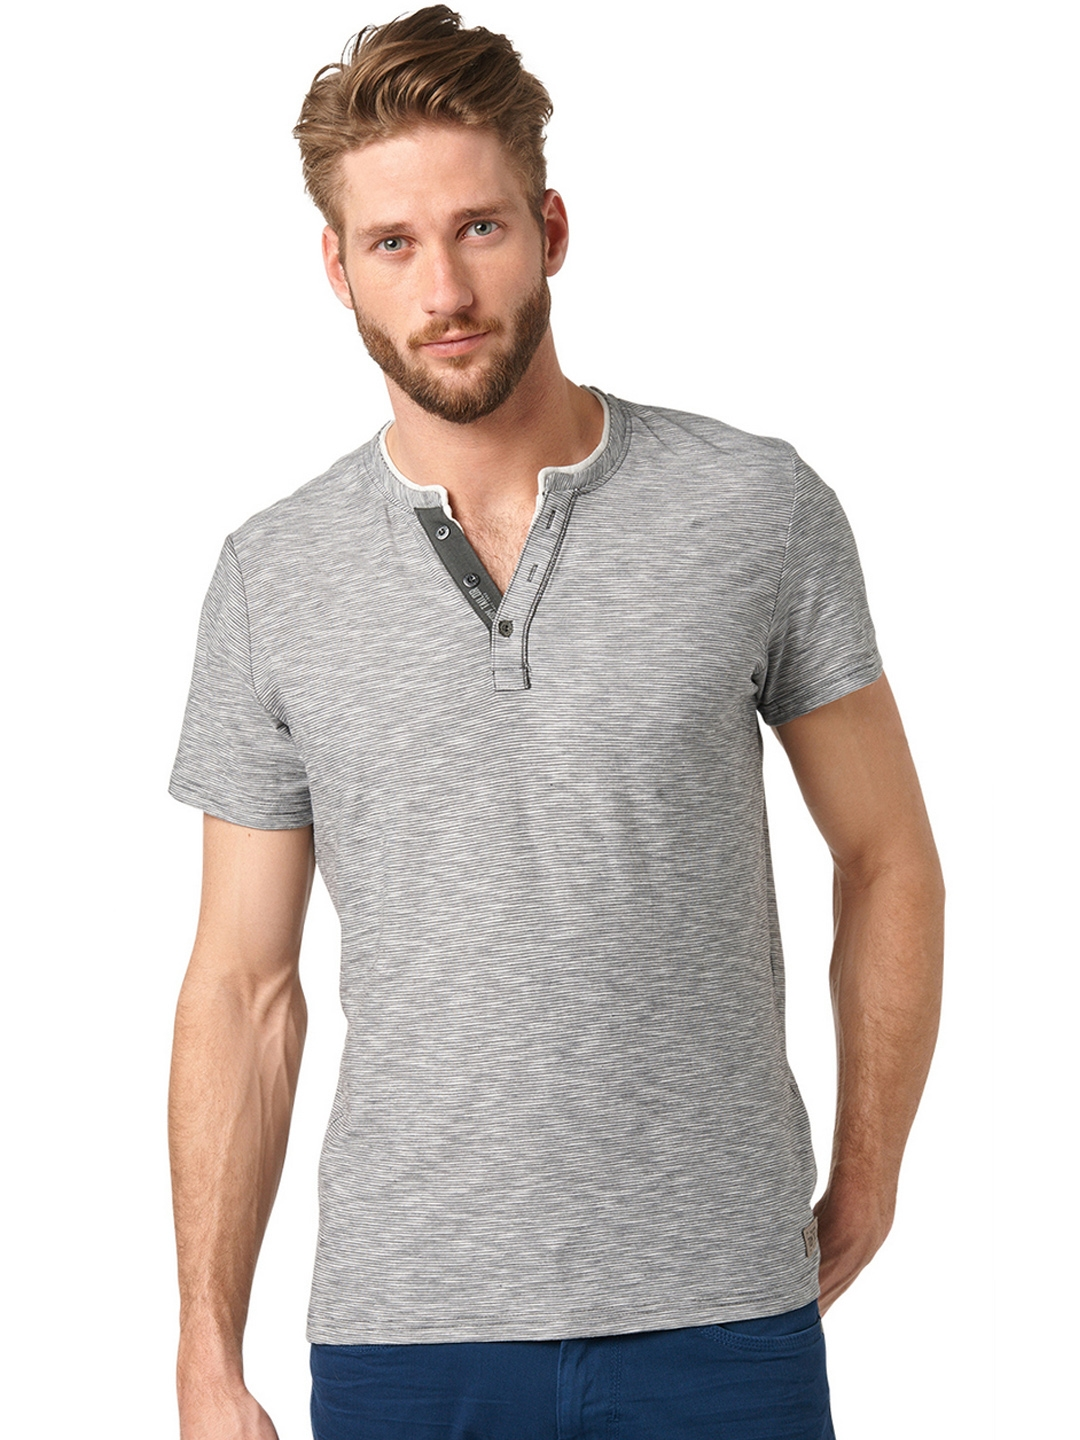 Tom Teiler Buy Tom Tailor Men Grey Striped Slim Fit Henley T Shirt Tshirts